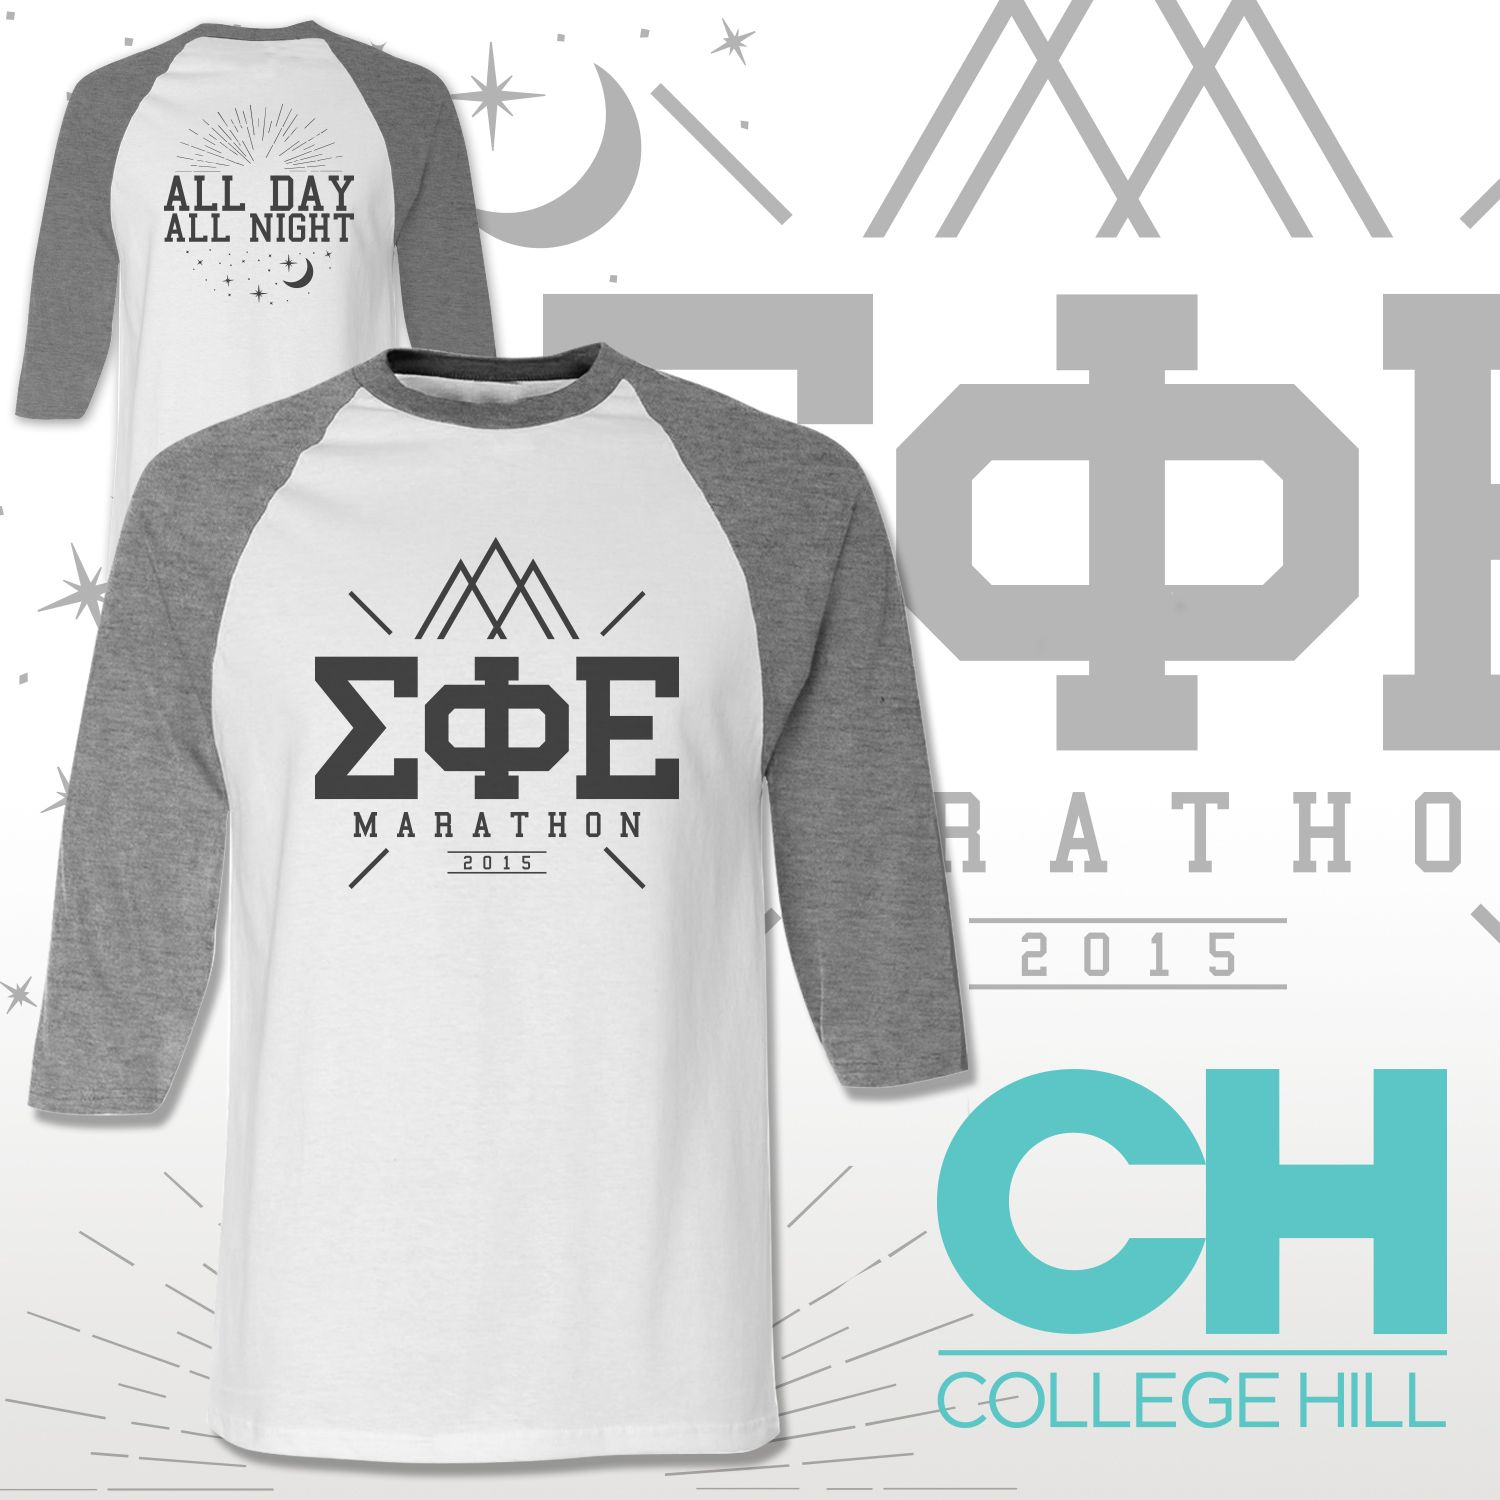 ec3796b546a Because Fraternities need clothes too! Baseball tees designed by College  Hill Custom Threads sorority and fraternity greek apparel and products!